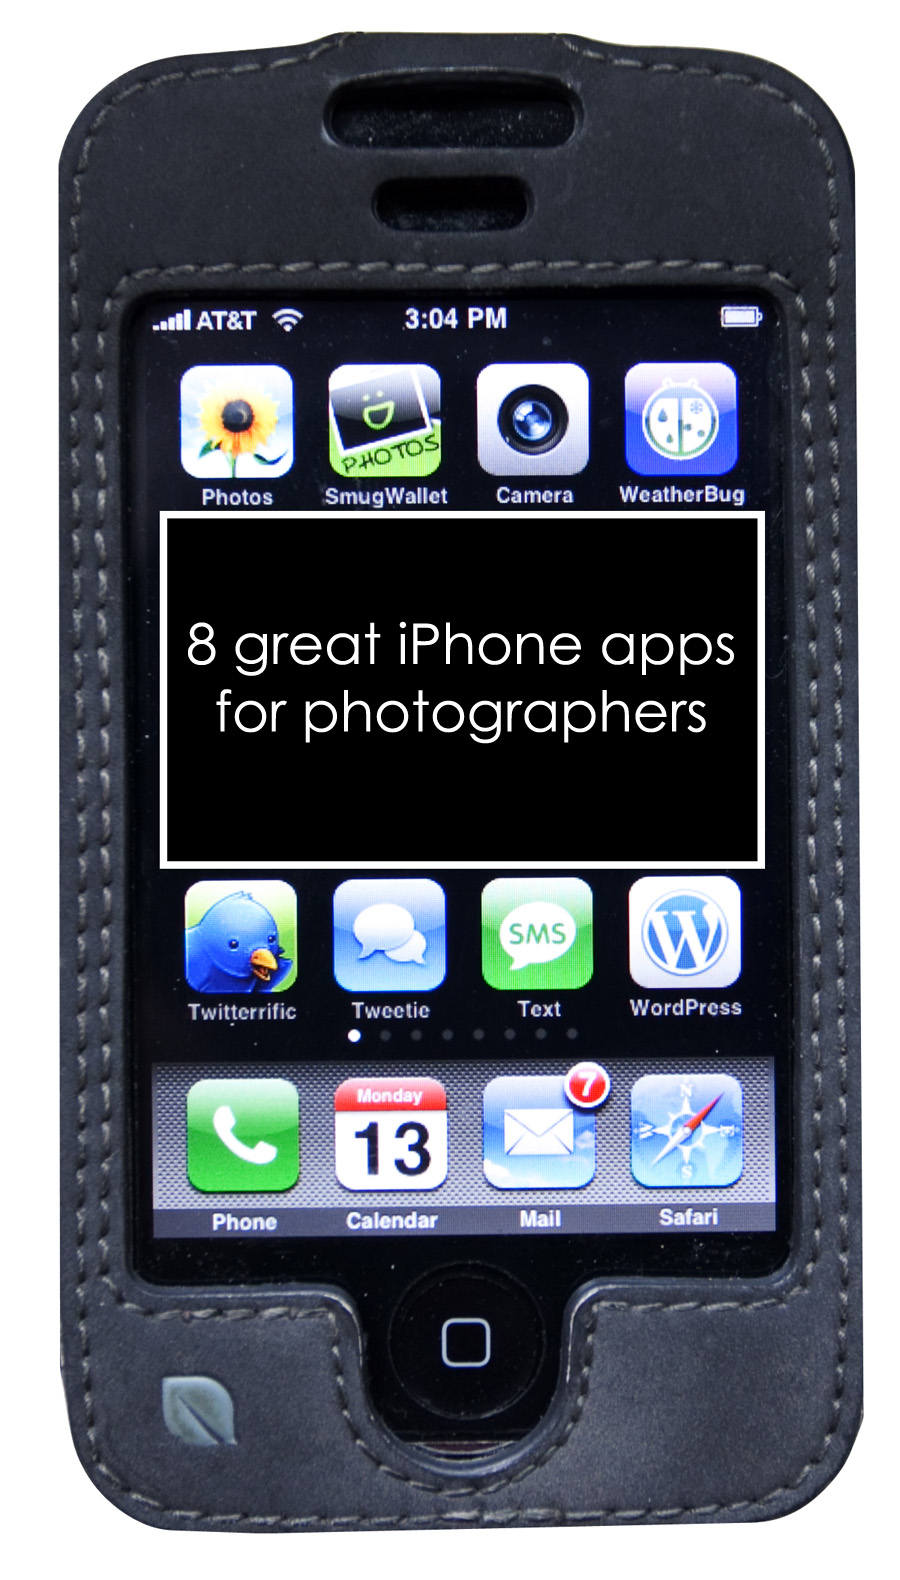 iphone1 8 Great iPhone Apps for Photographers